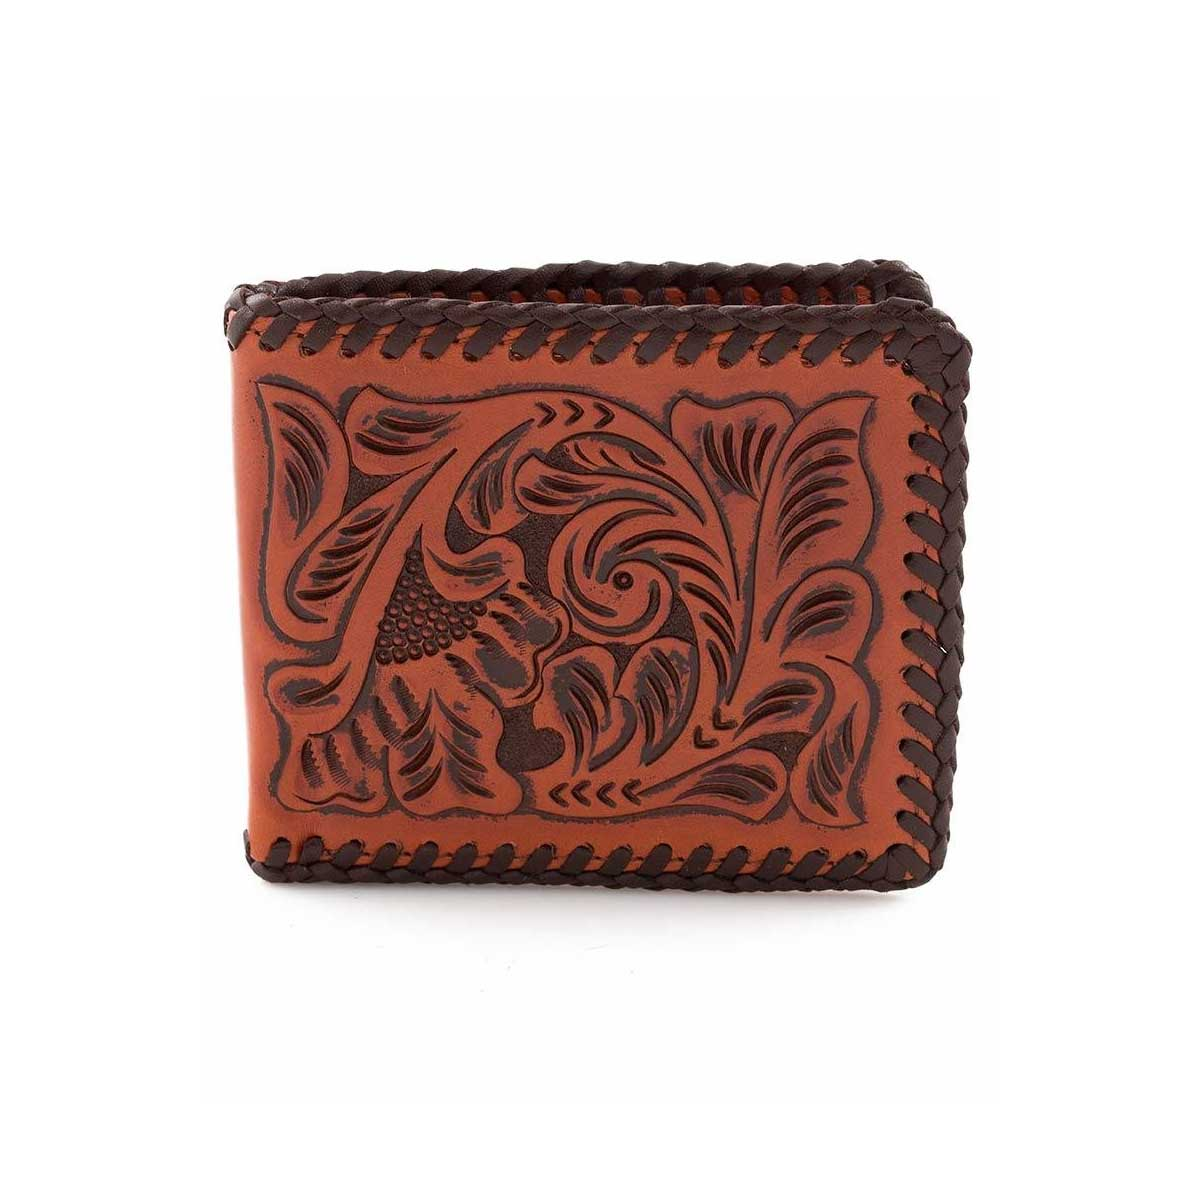 M & F Western 3D Floral Hand Tooled Leather Bi-fold Wallet